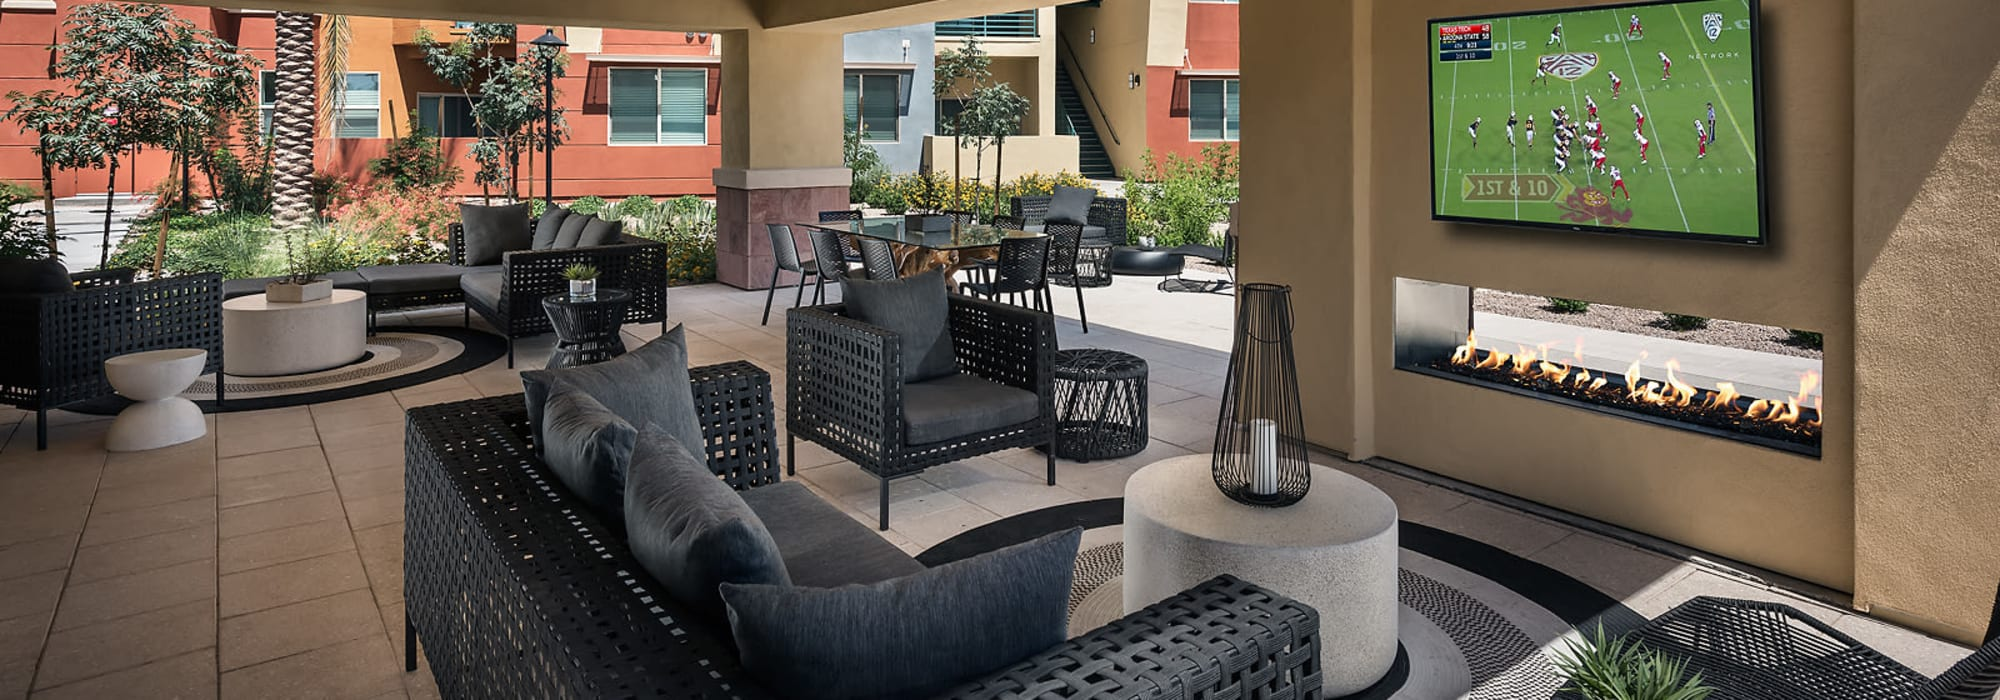 Community lounge with big screen televisions at Villa Vita Apartments